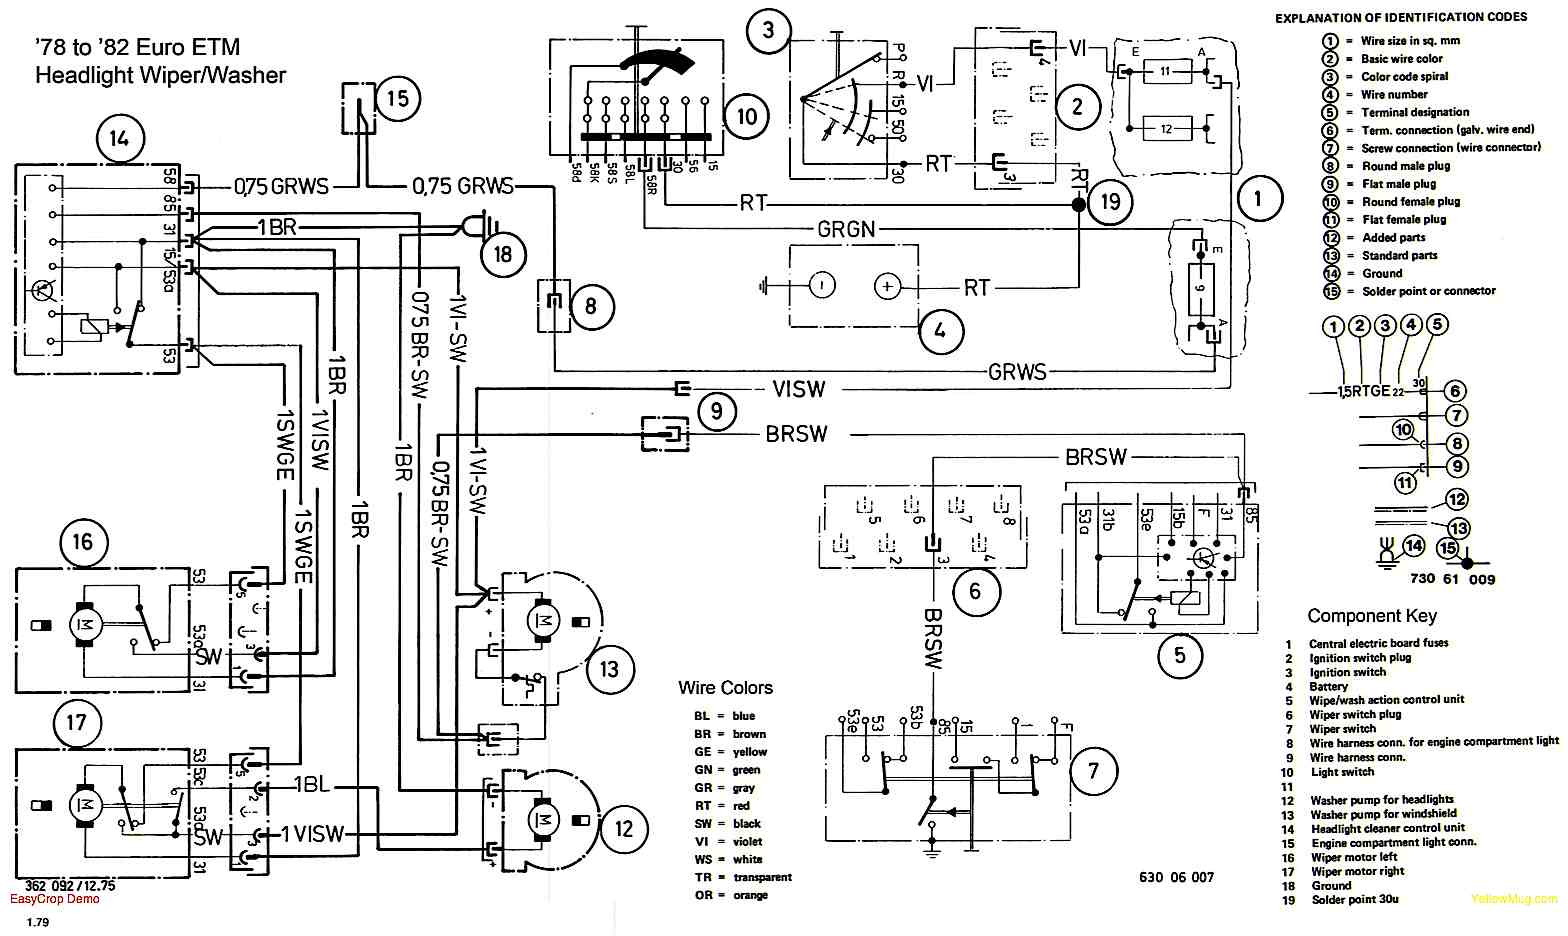 headlight_cleaners_composit_719 e28 euro headlamp washer system \u2022 mye28 com e28 wiring diagram at readyjetset.co